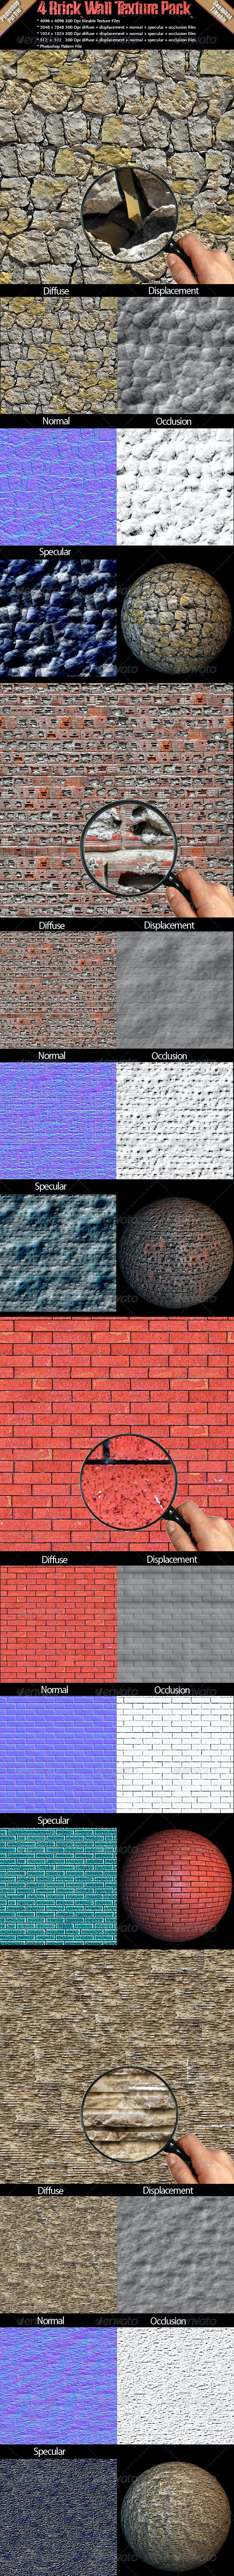 4 Brick Wall Texture Pack - 3DOcean Item for Sale